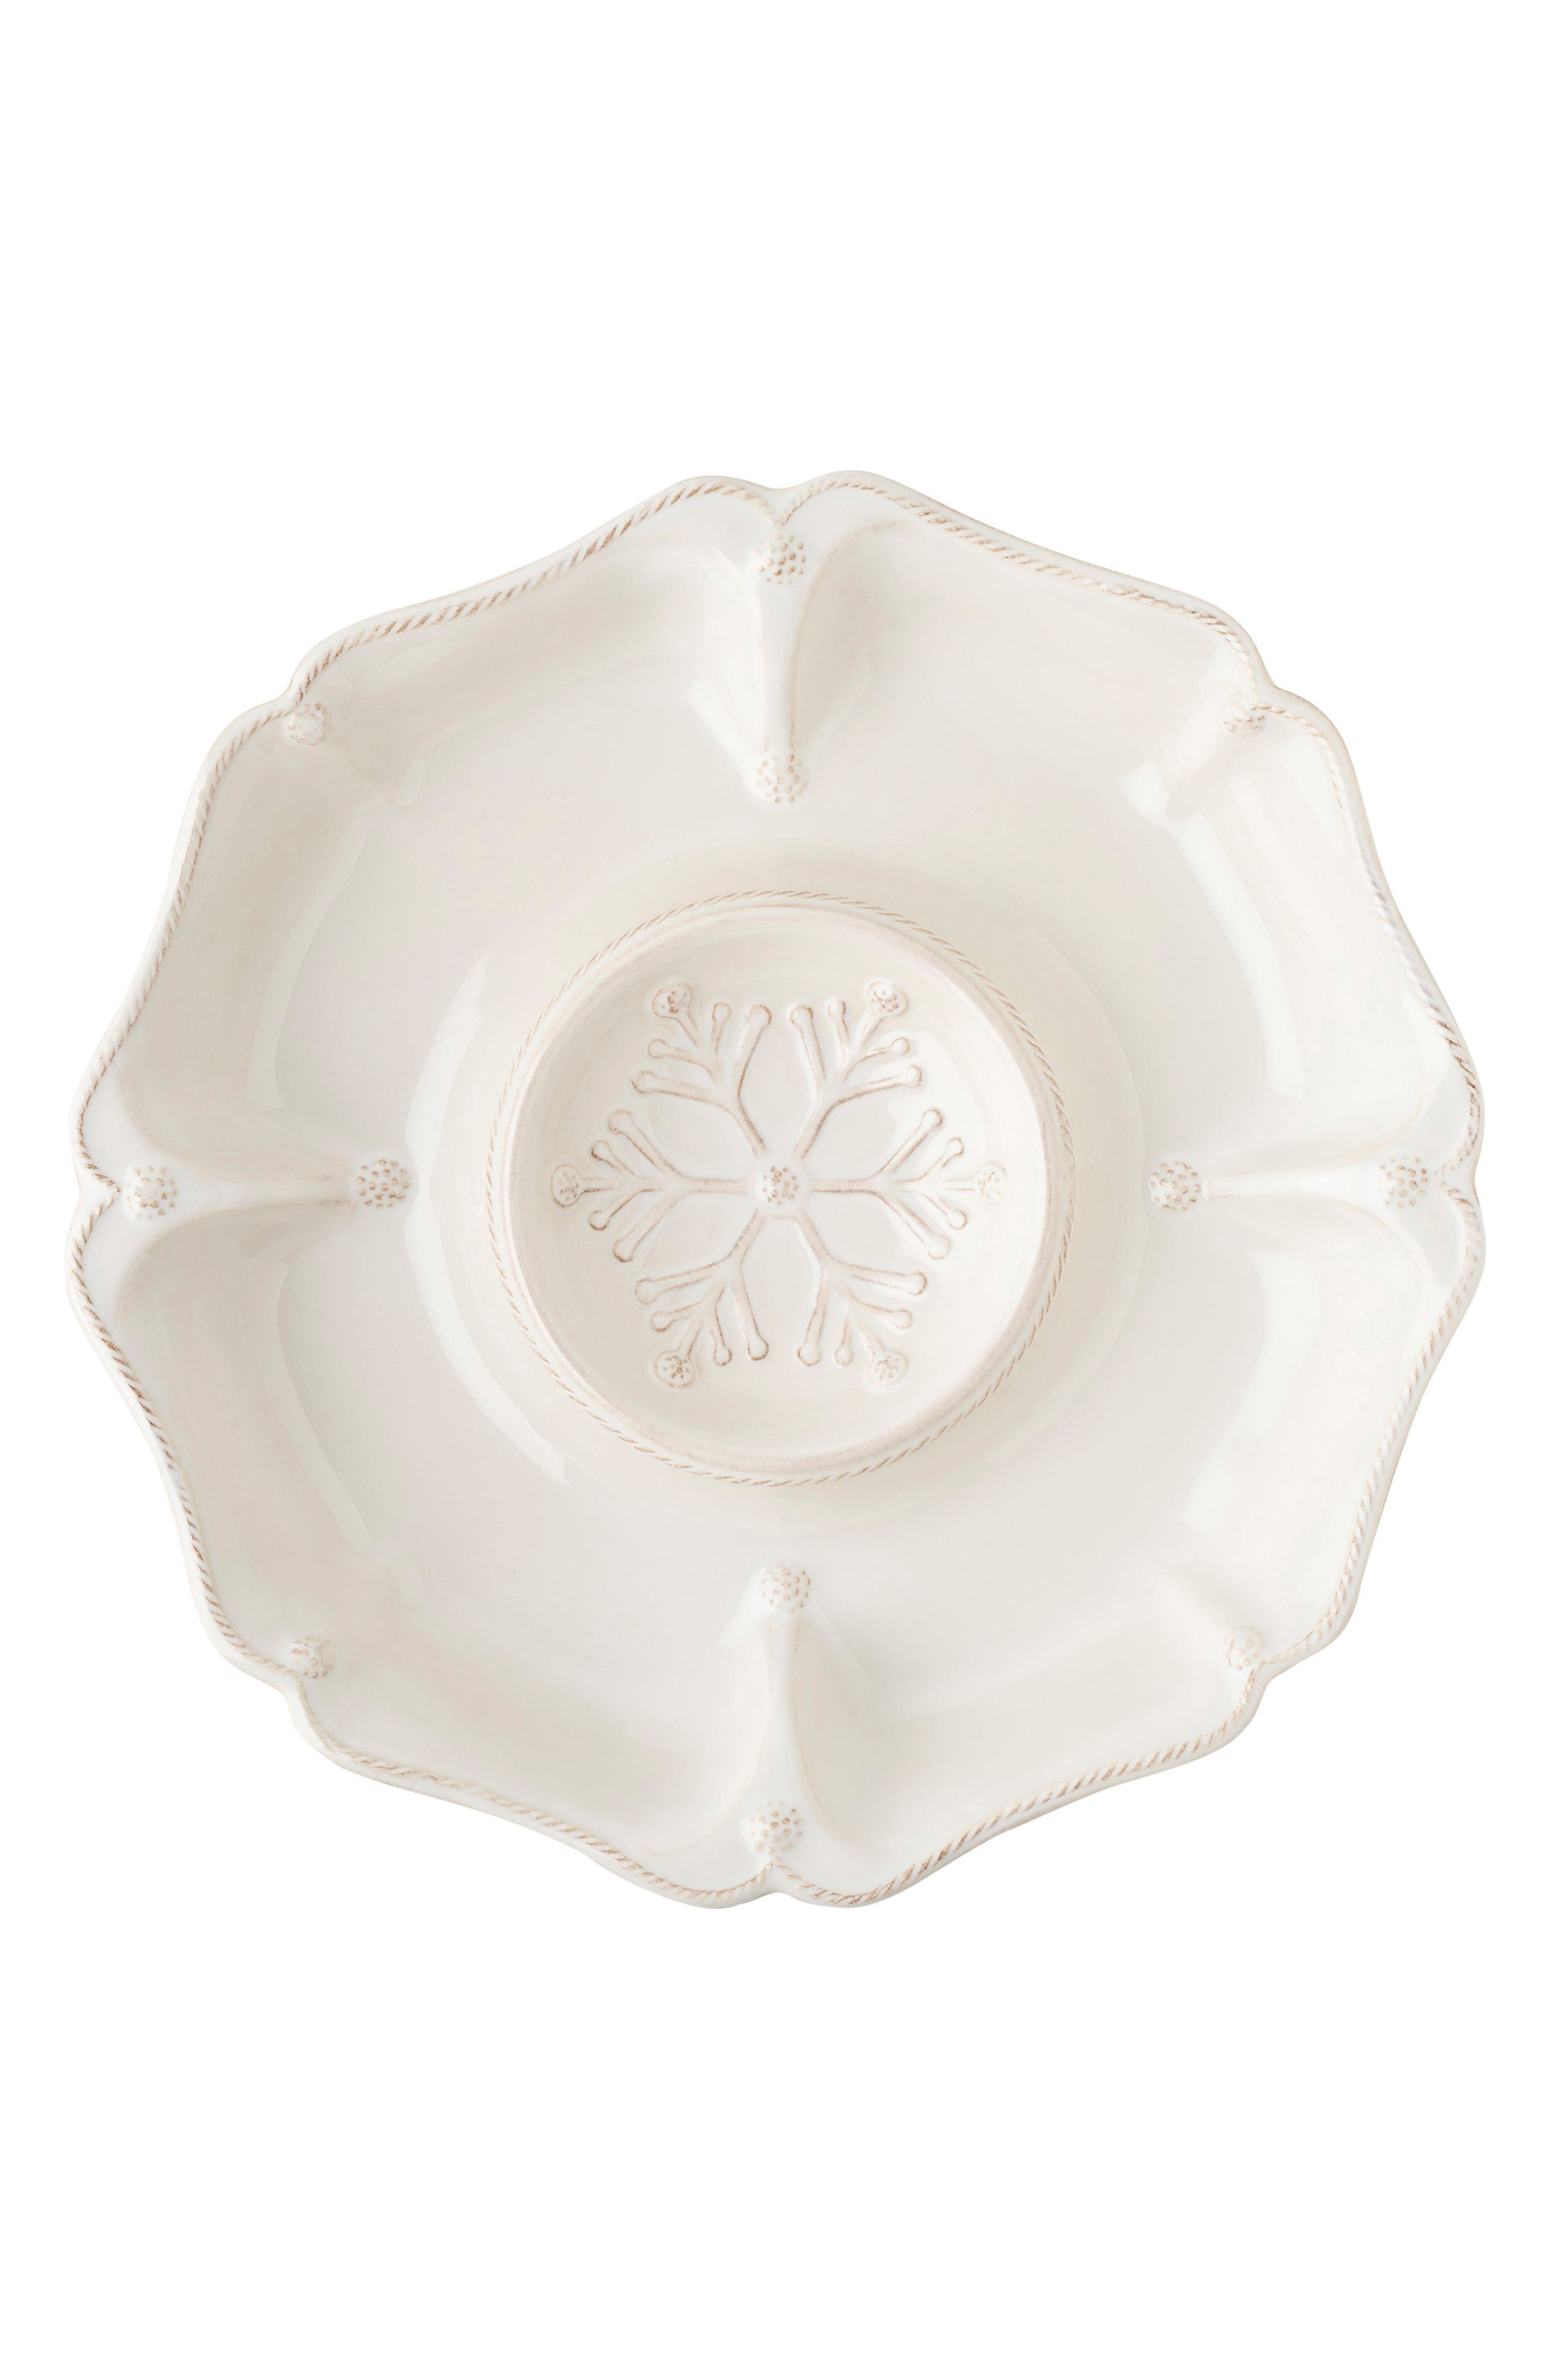 Berry & Thread Ceramic Hors D'Oeuvres Serving Tray,                             Main thumbnail 1, color,                             Whitewash